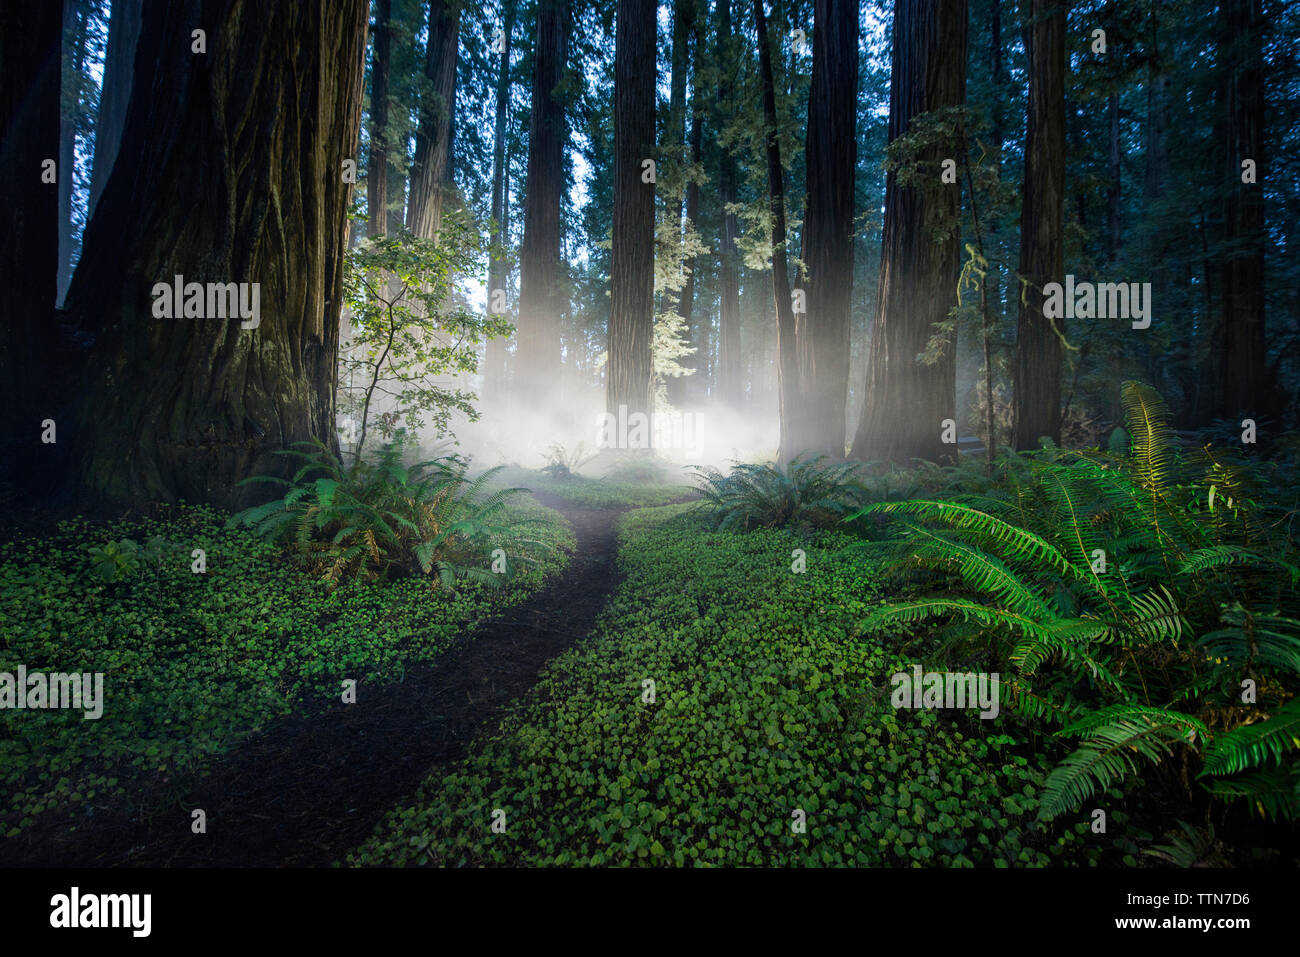 Trail amidst plants at Jedediah Smith Redwoods State Park - Stock Image